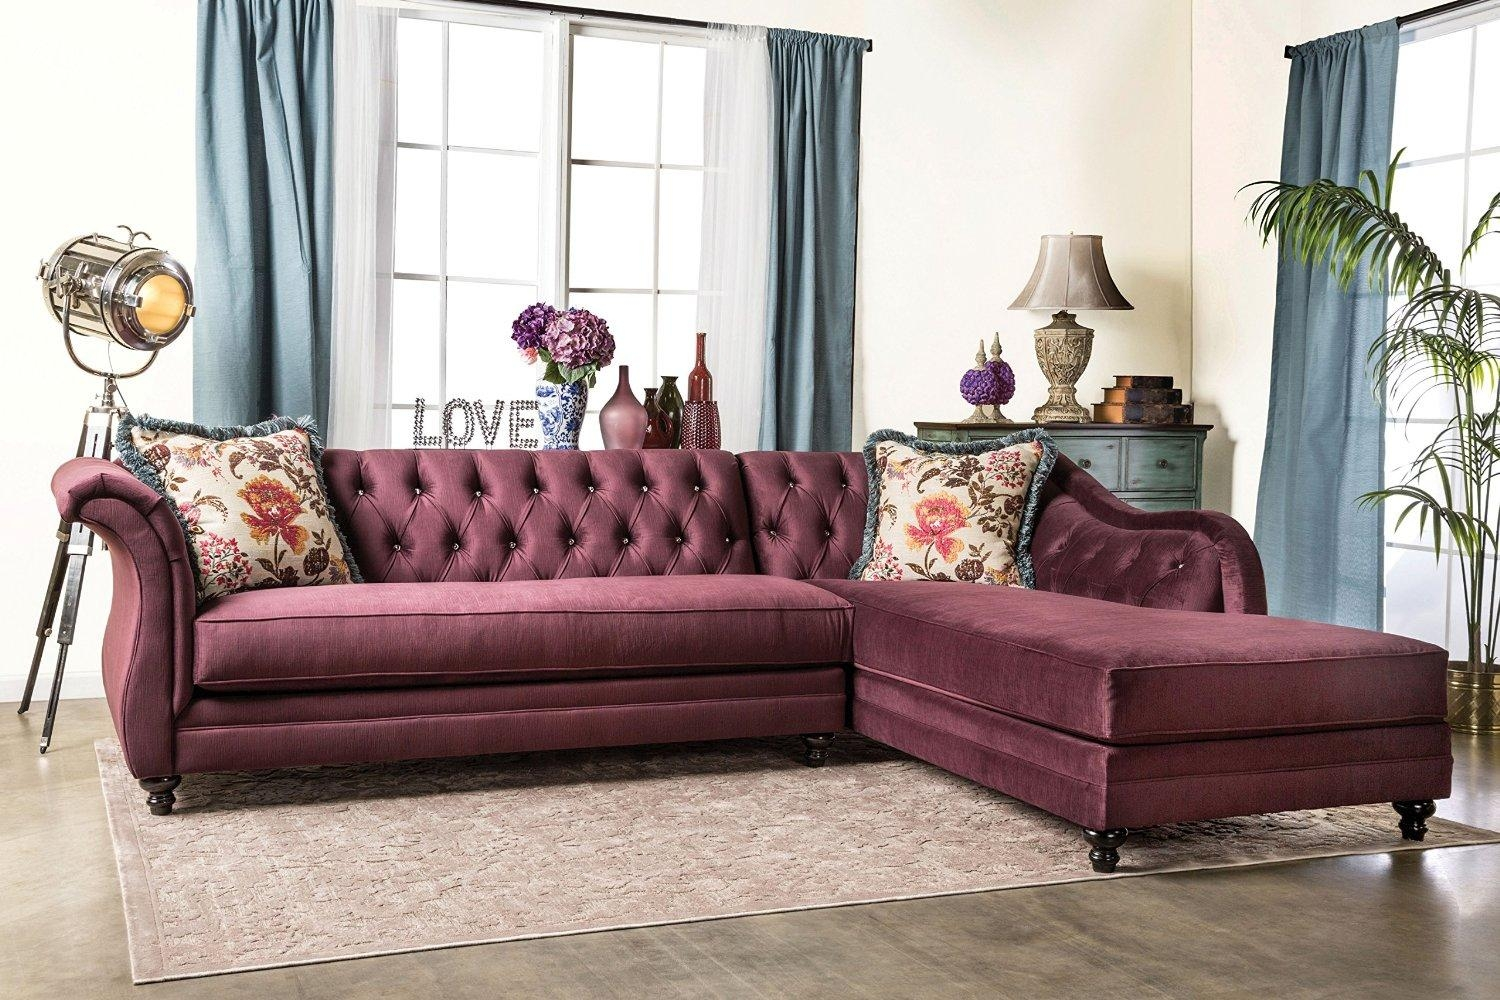 25 Best Chesterfield Sofas To Buy In 2017 With Regard To Tufted Leather Chesterfield Sofas (Image 8 of 20)